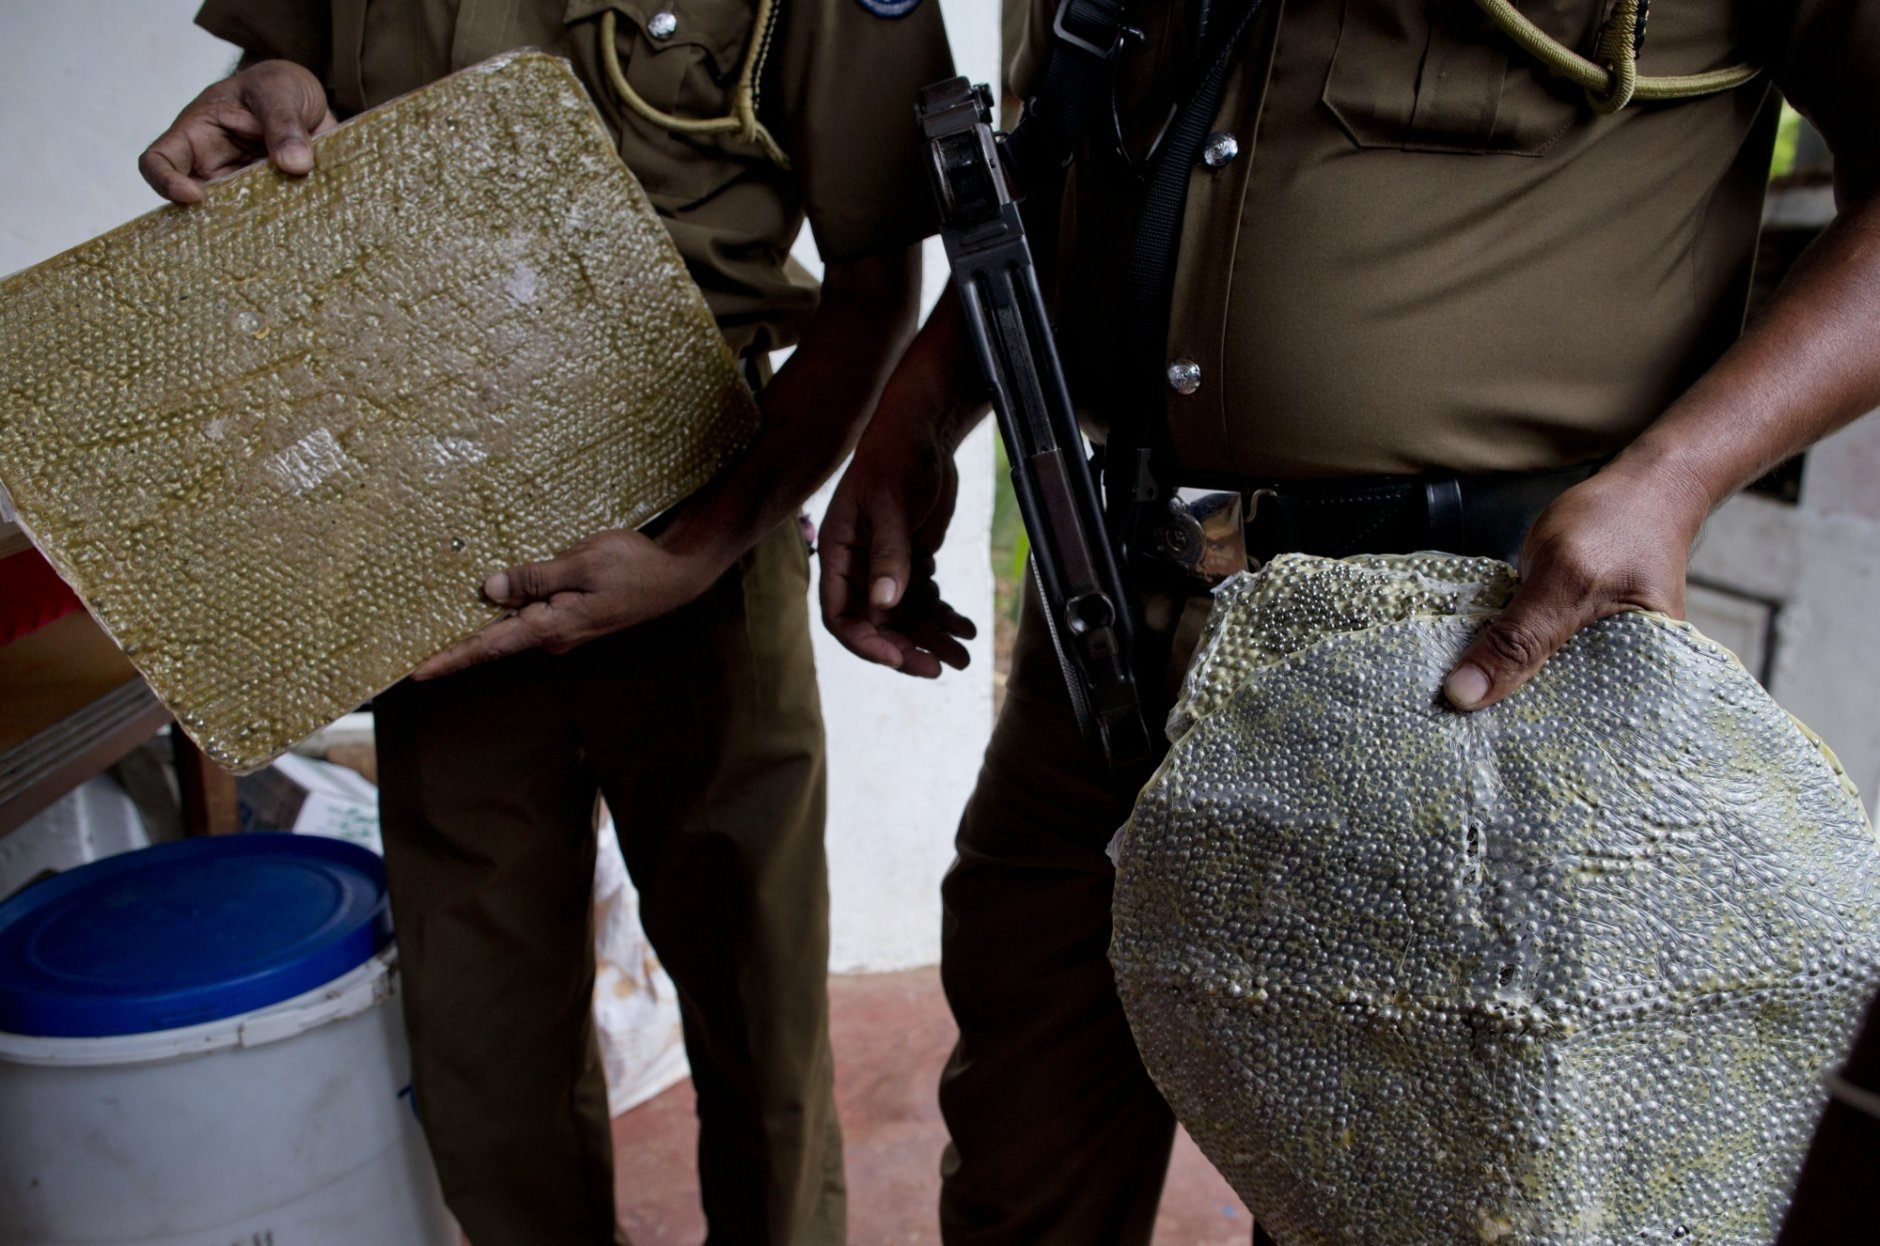 Police officers display ball-bearings that increase the lethality of explosions in Ampara, Sri Lanka, Sunday, April 28, 2019. Police in Ampara showed The Associated Press on Sunday the explosives, chemicals and Islamic State flag they recovered from the site of one security force raid in the region as Sri Lanka's Catholics celebrated at televised Mass in the safety of their homes. (AP Photo/Gemunu Amarasinghe)